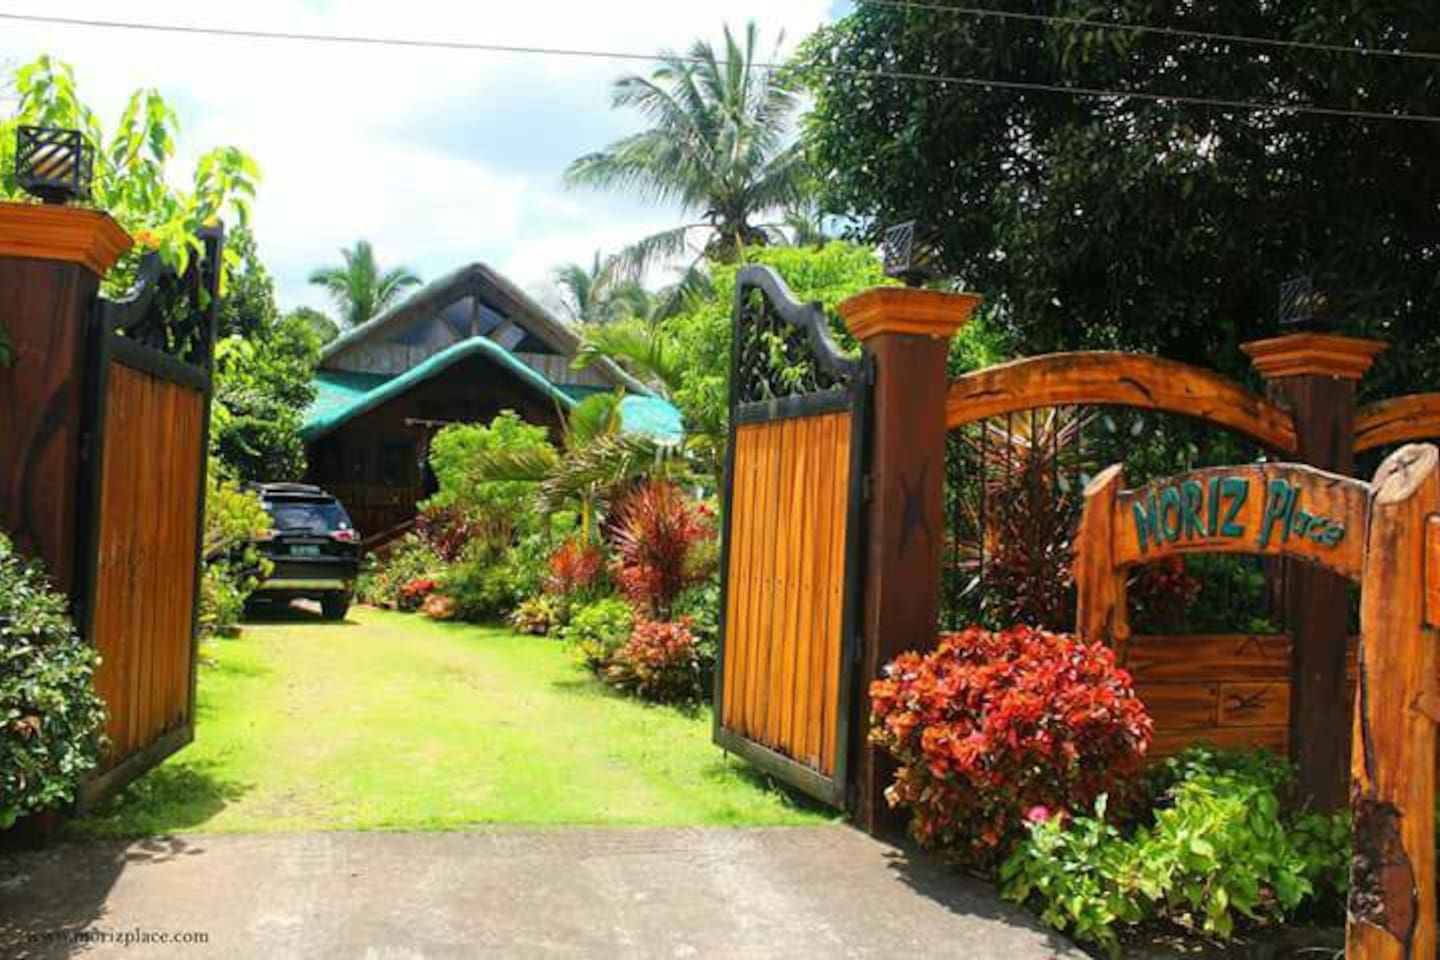 moriz place tagaytay houses for rent in cavite calabarzon